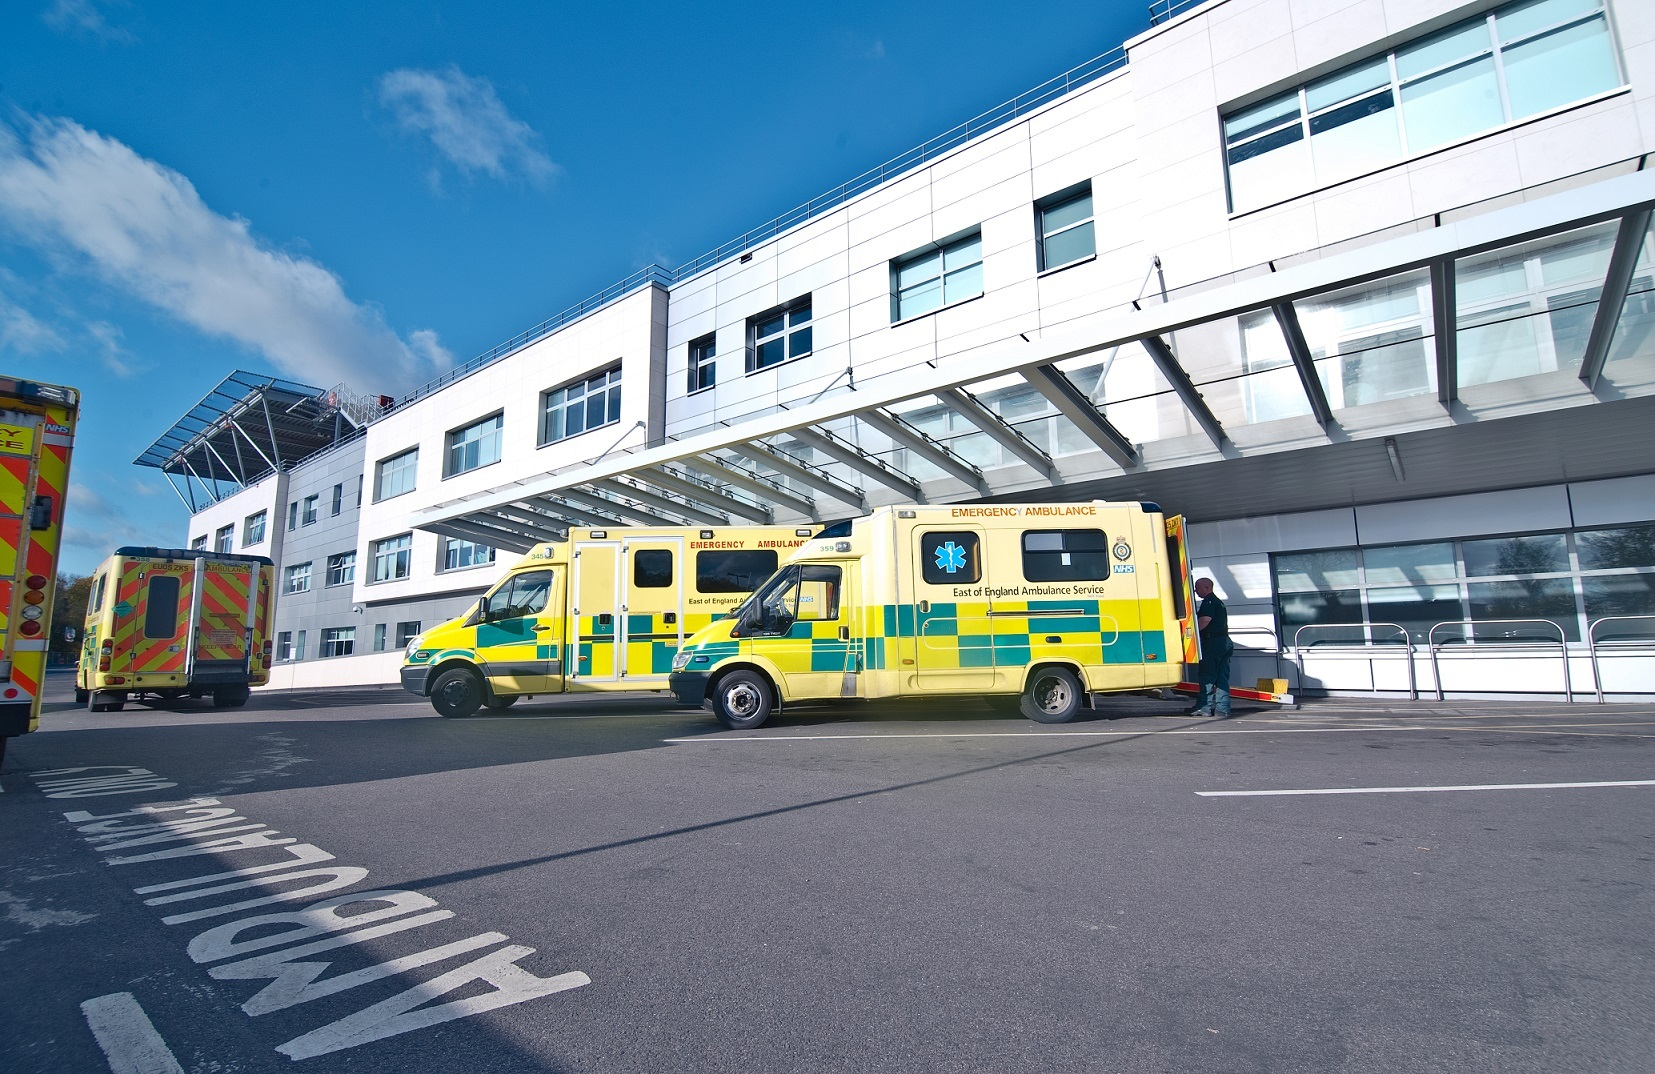 High demand at hospital today, trust warns